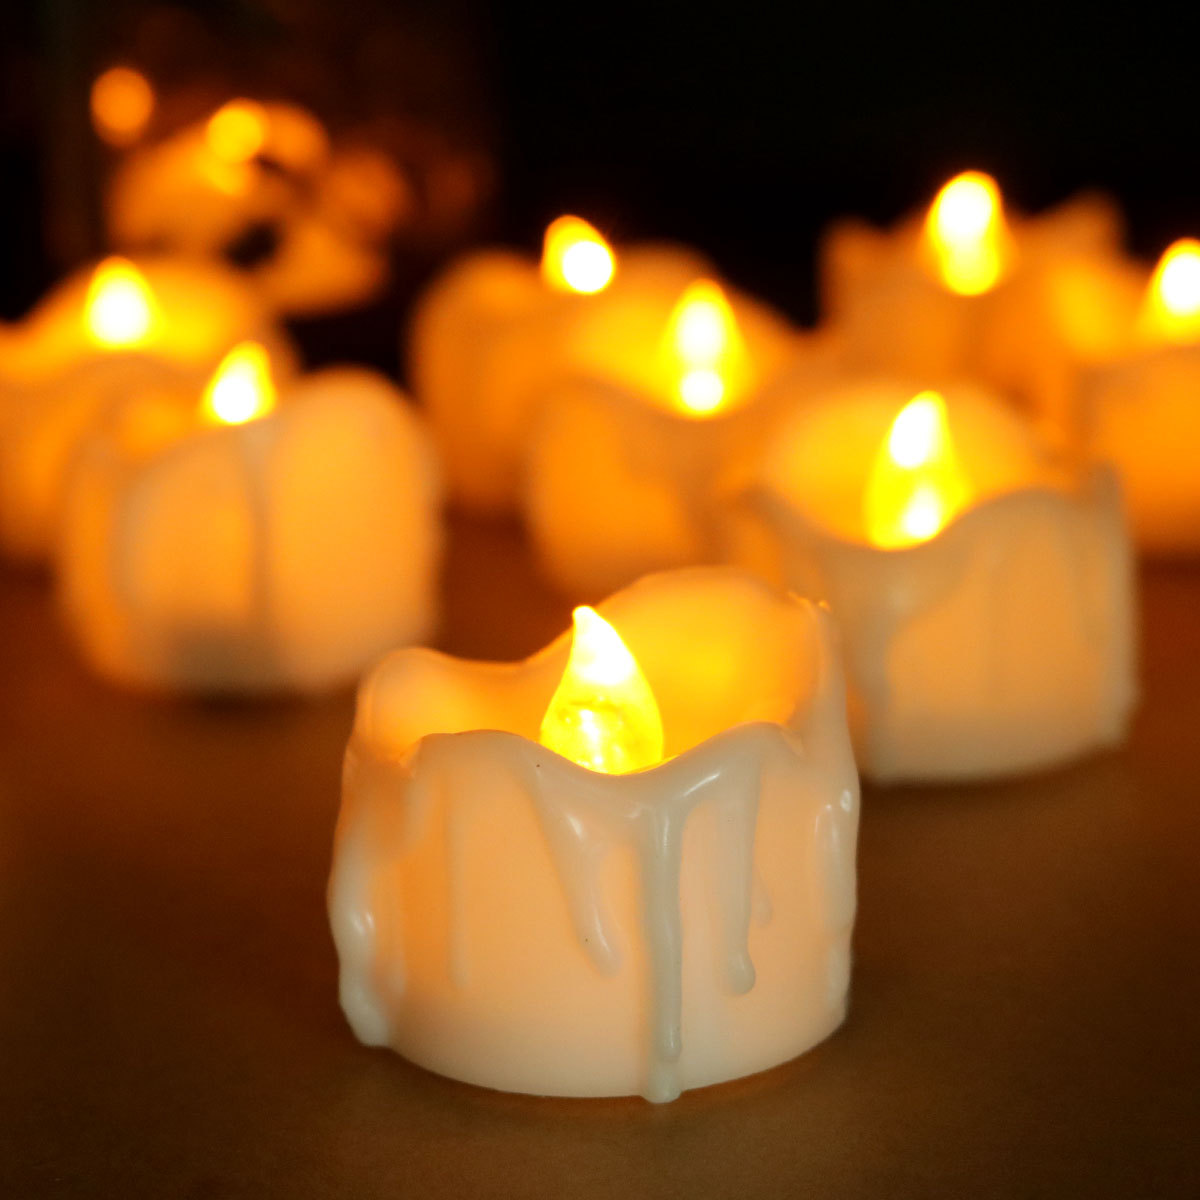 12pcs/lot Halloween LED Yellow Flicker Battery Candles Electric Candles Tea Lights